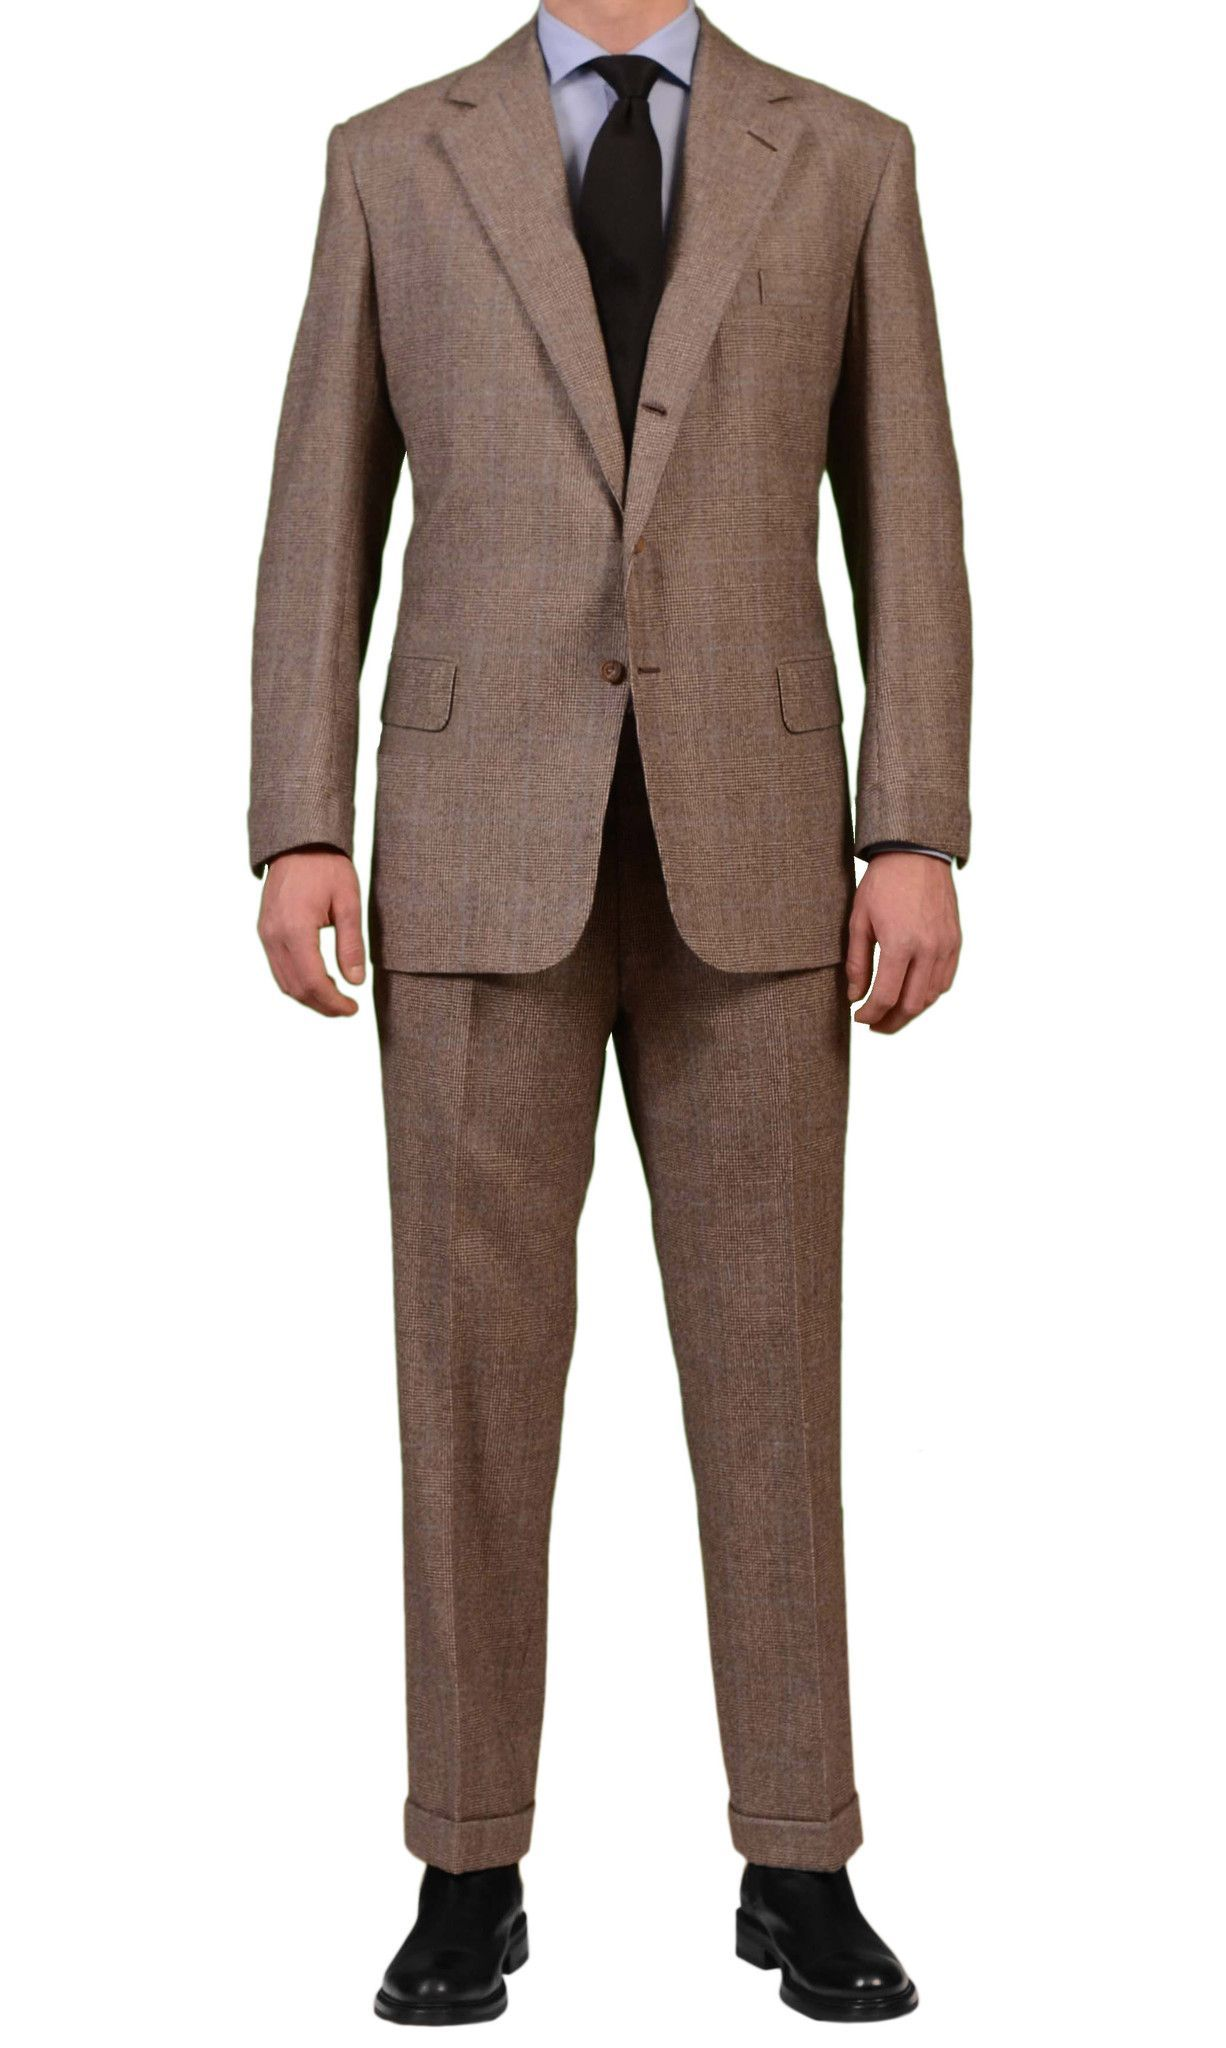 Men's outfits with flannel  ANDERSON u SHEPPARD Bespoke Prince of Wales Wool Flannel Suit US